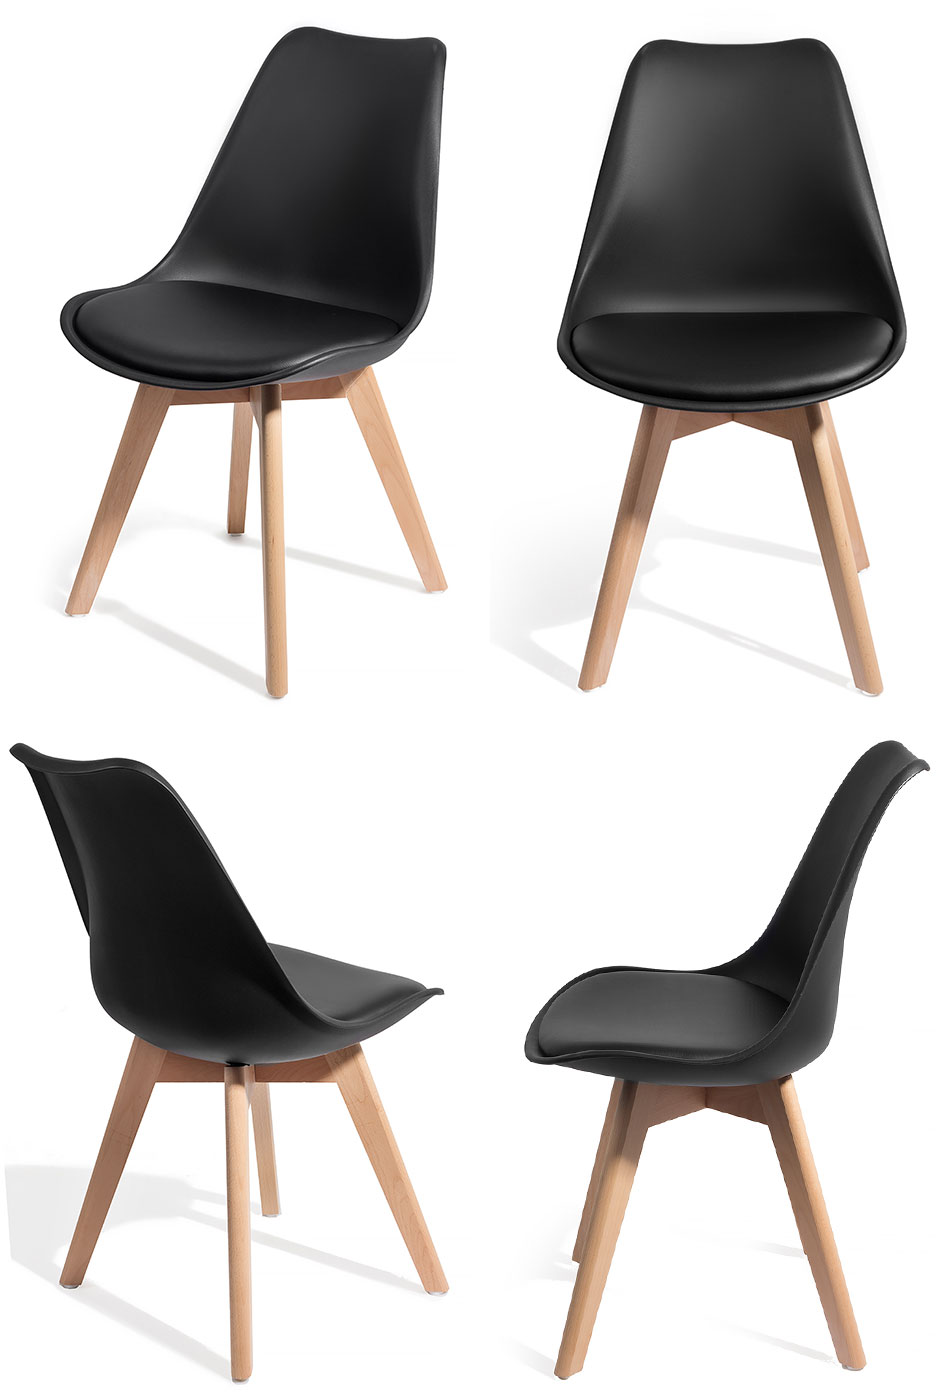 homekraft 4 chaises brekka design style scandinave top